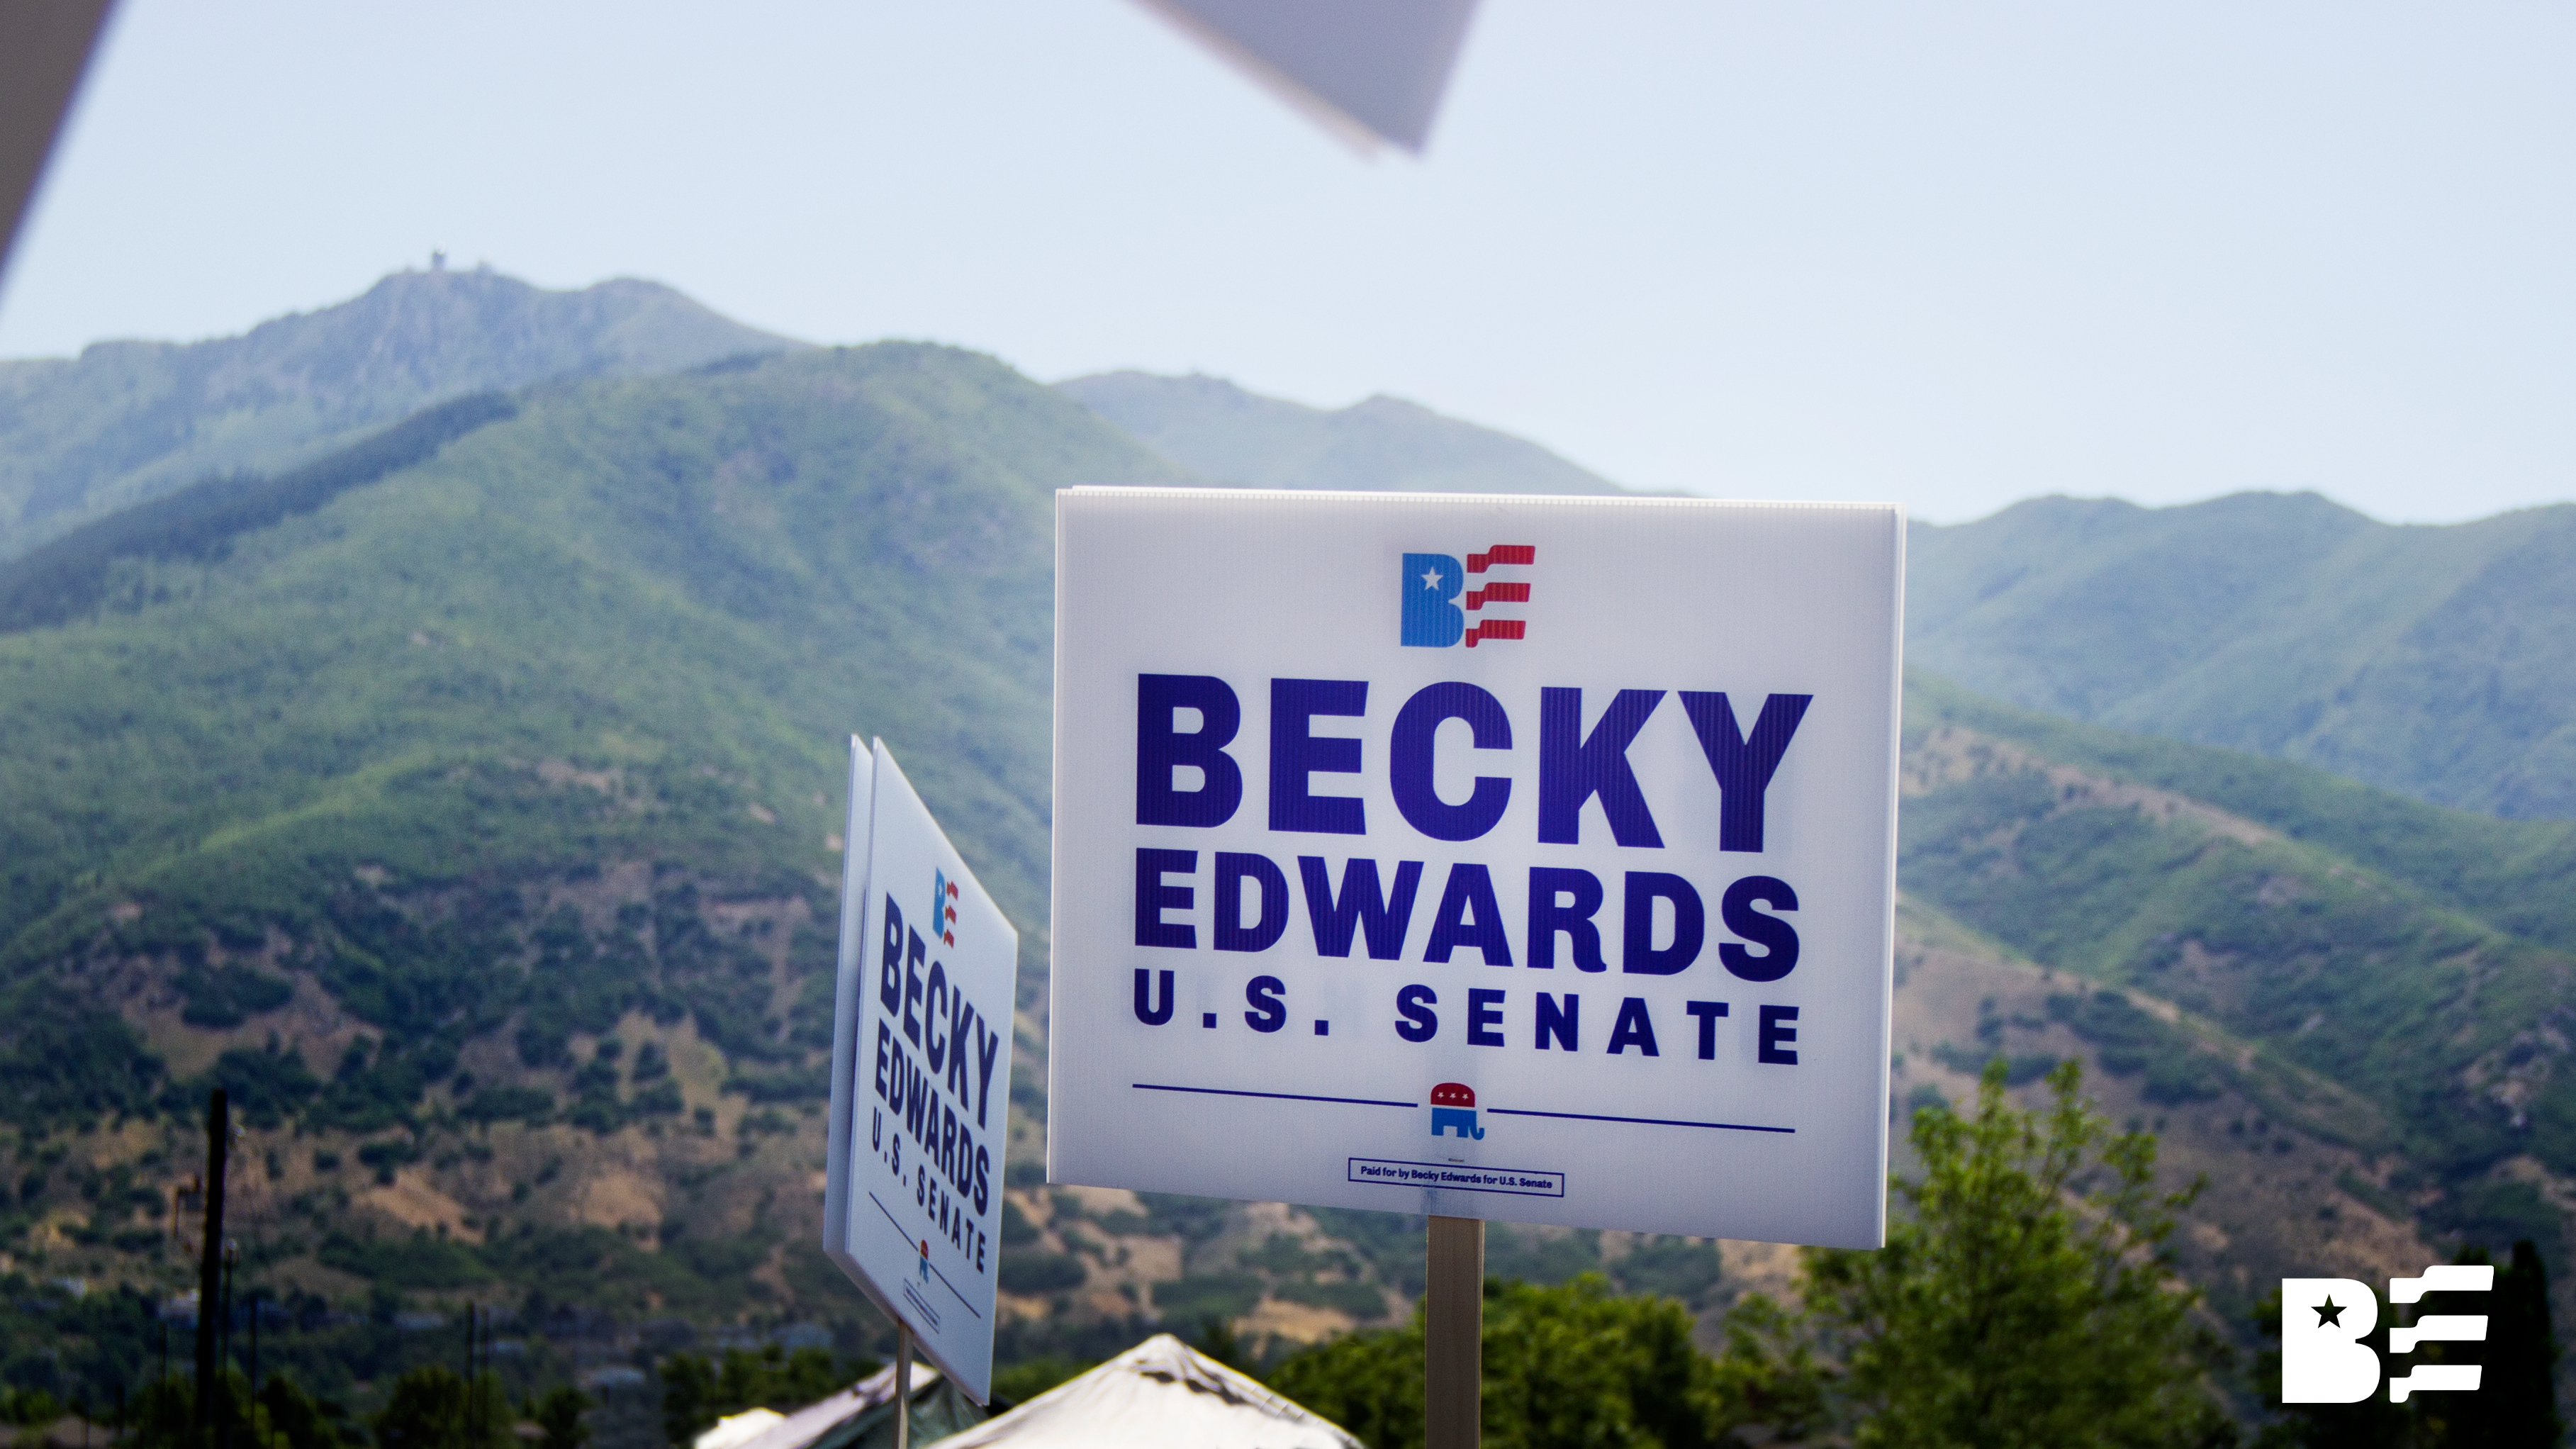 Becky Edwards Hits Early Fundraising Goal With Over $500,000 In Contributions